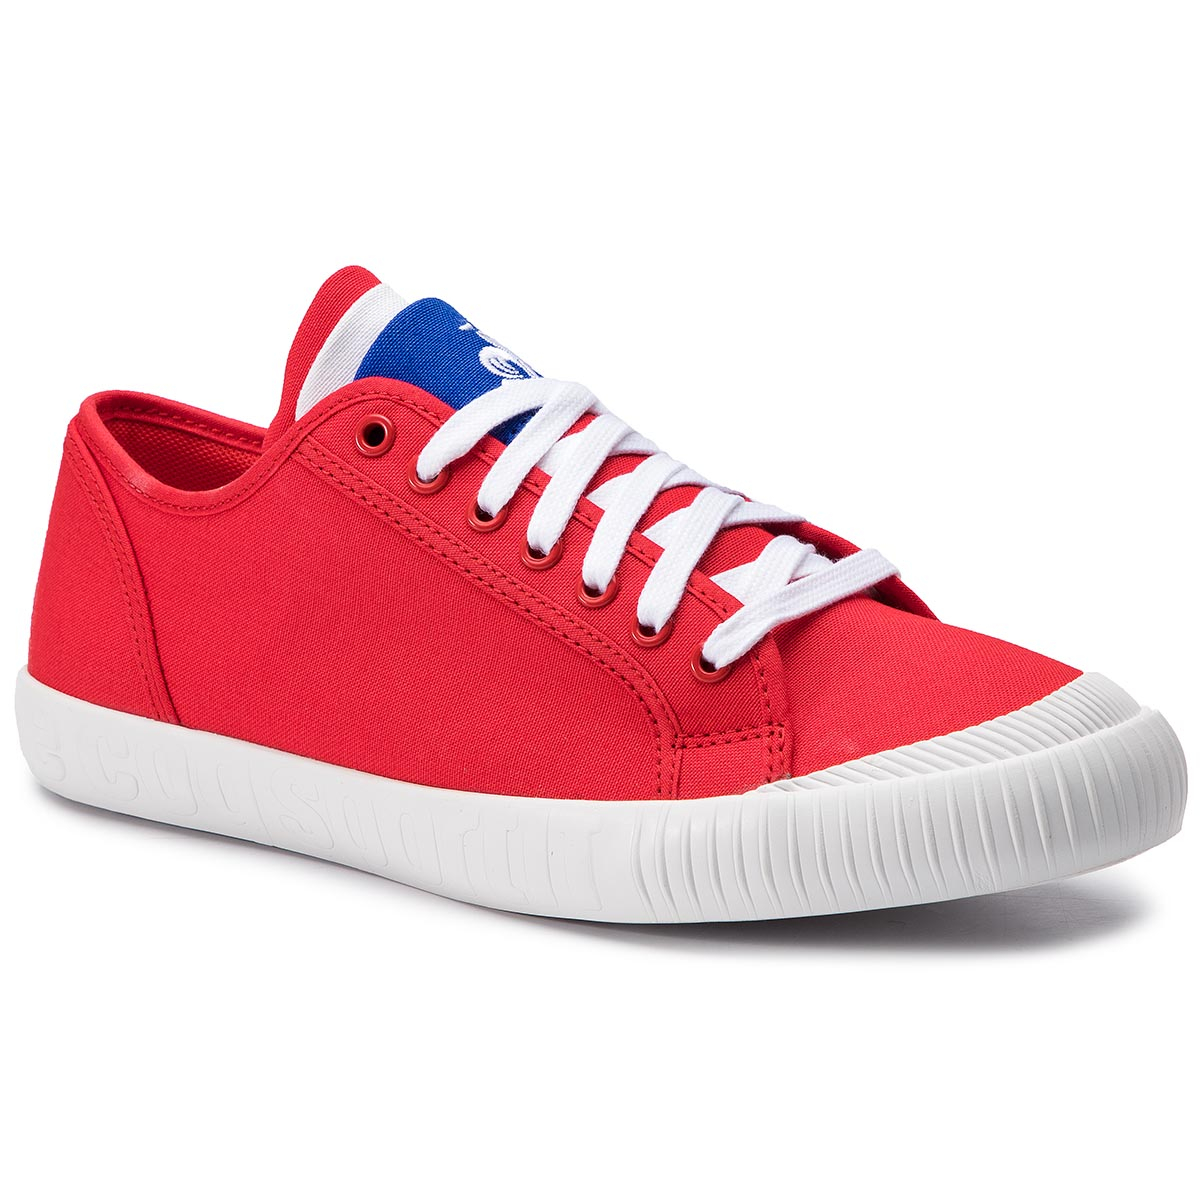 Teniși LE COQ SPORTIF - Nationale Sport 1910021 Pure Red